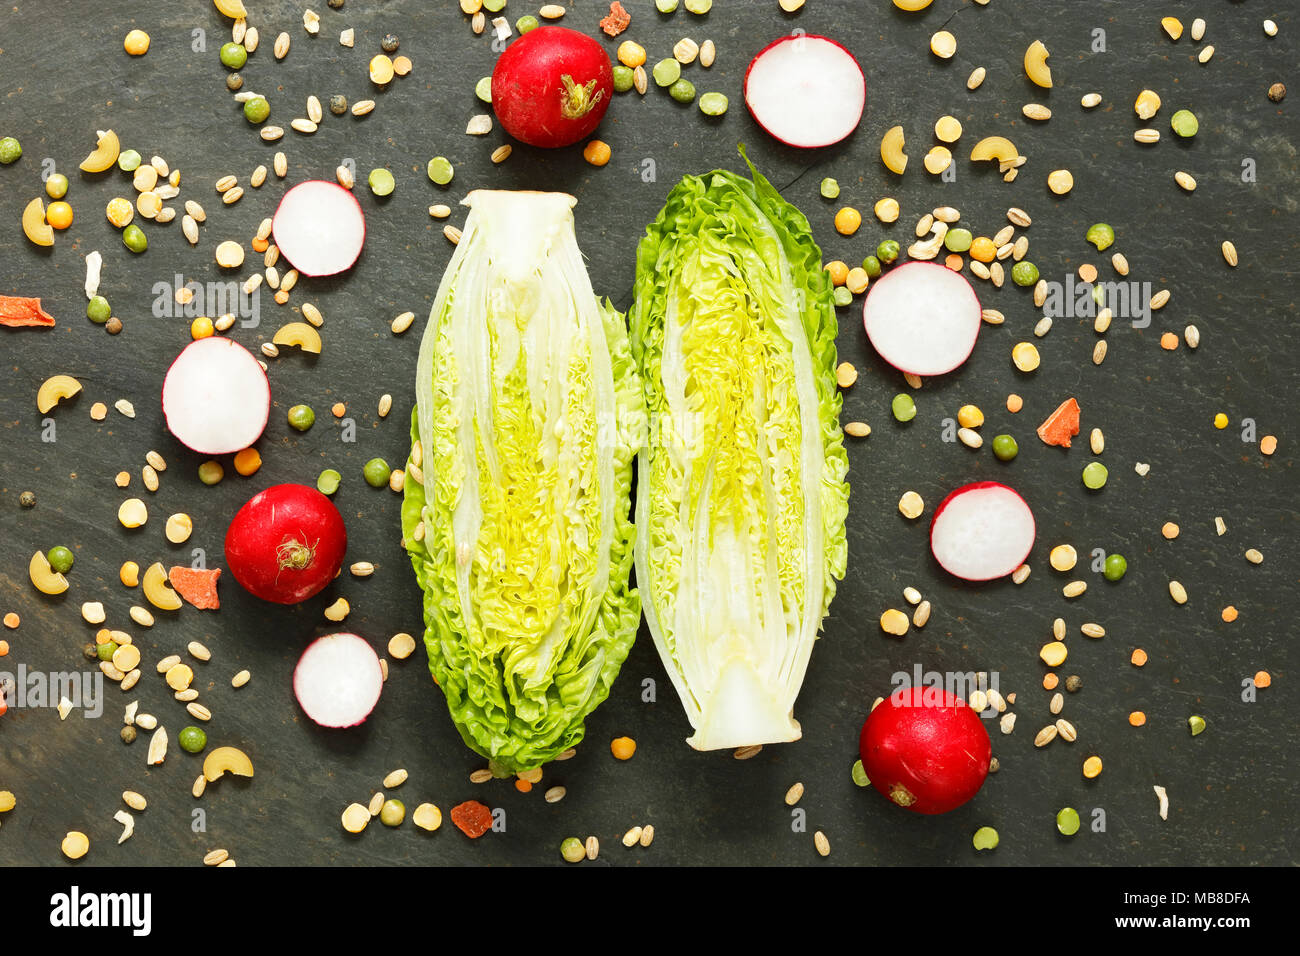 Gem lettuce, radish and dried vegetable ingredients for vegan soup or stew - Stock Image